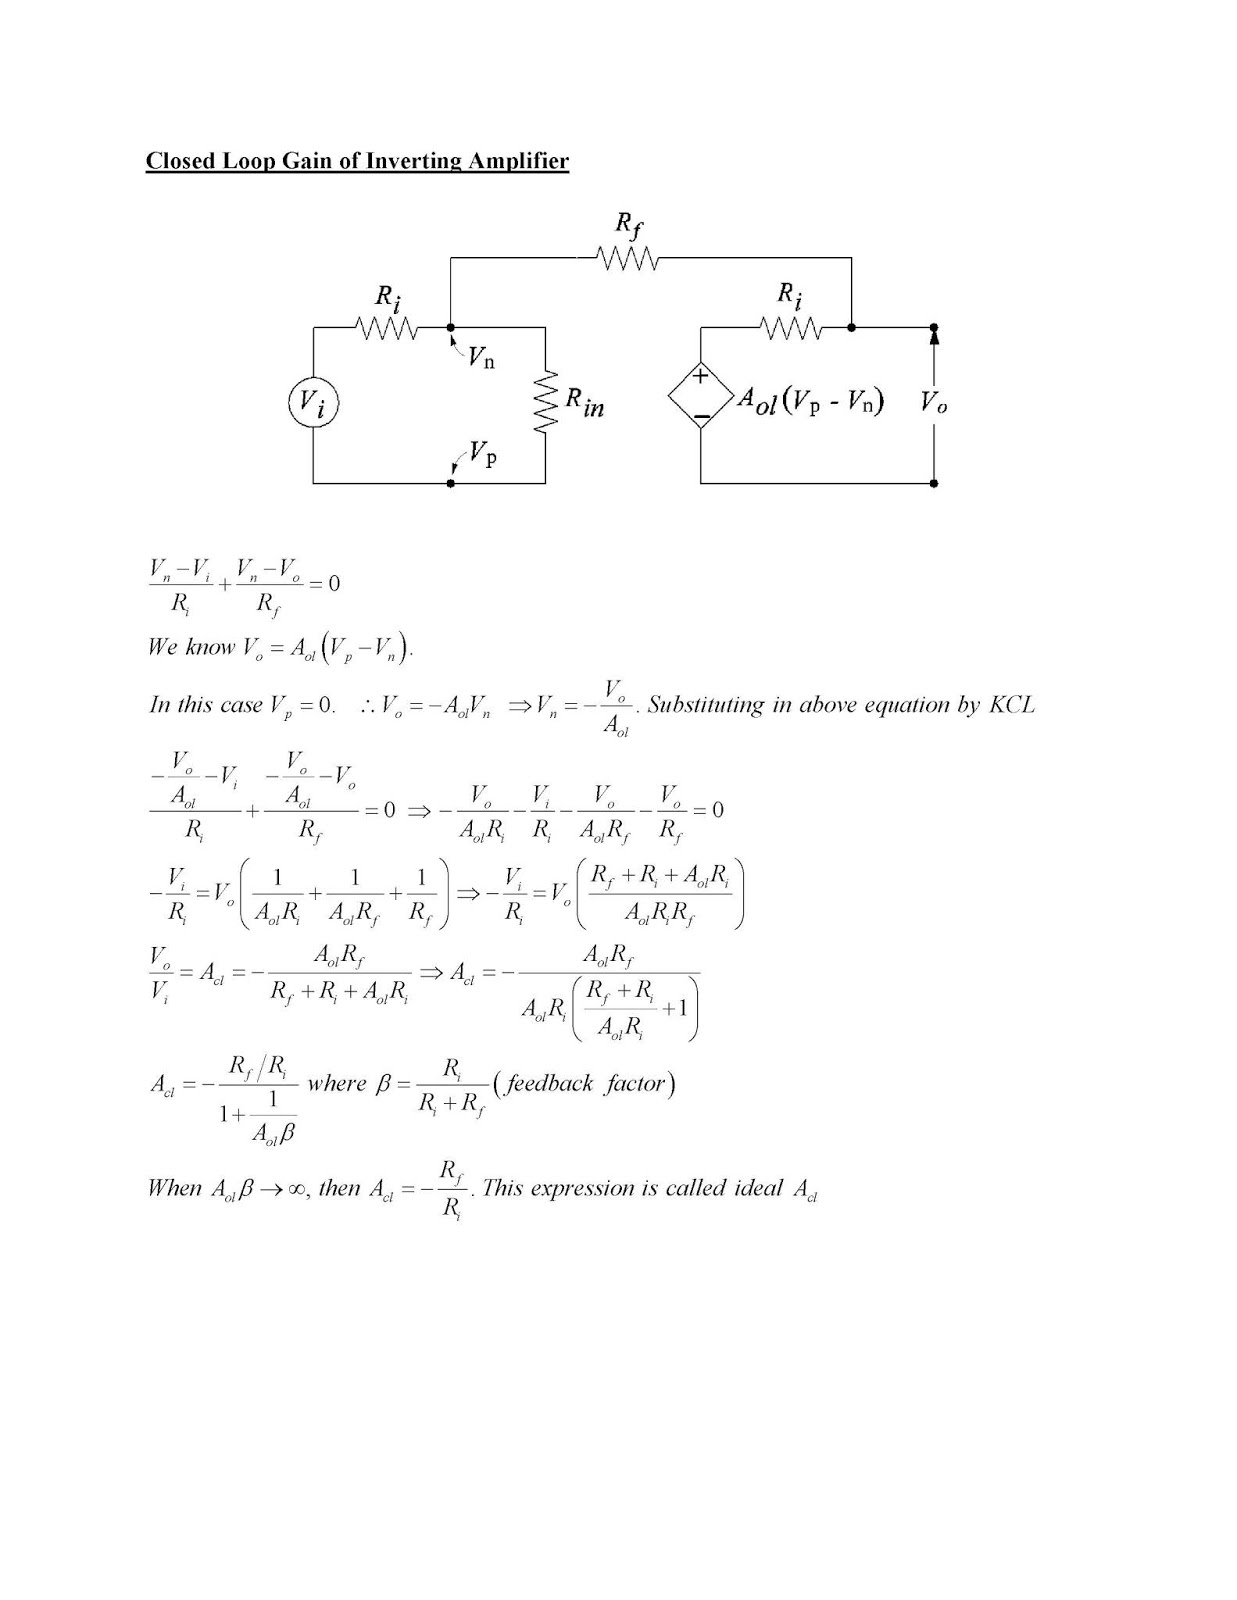 Trictron July 2018 Diffusion Of Impurities For Ic Fabrication Closed Loop Gain Op Amp In Inverting And Non Configurations